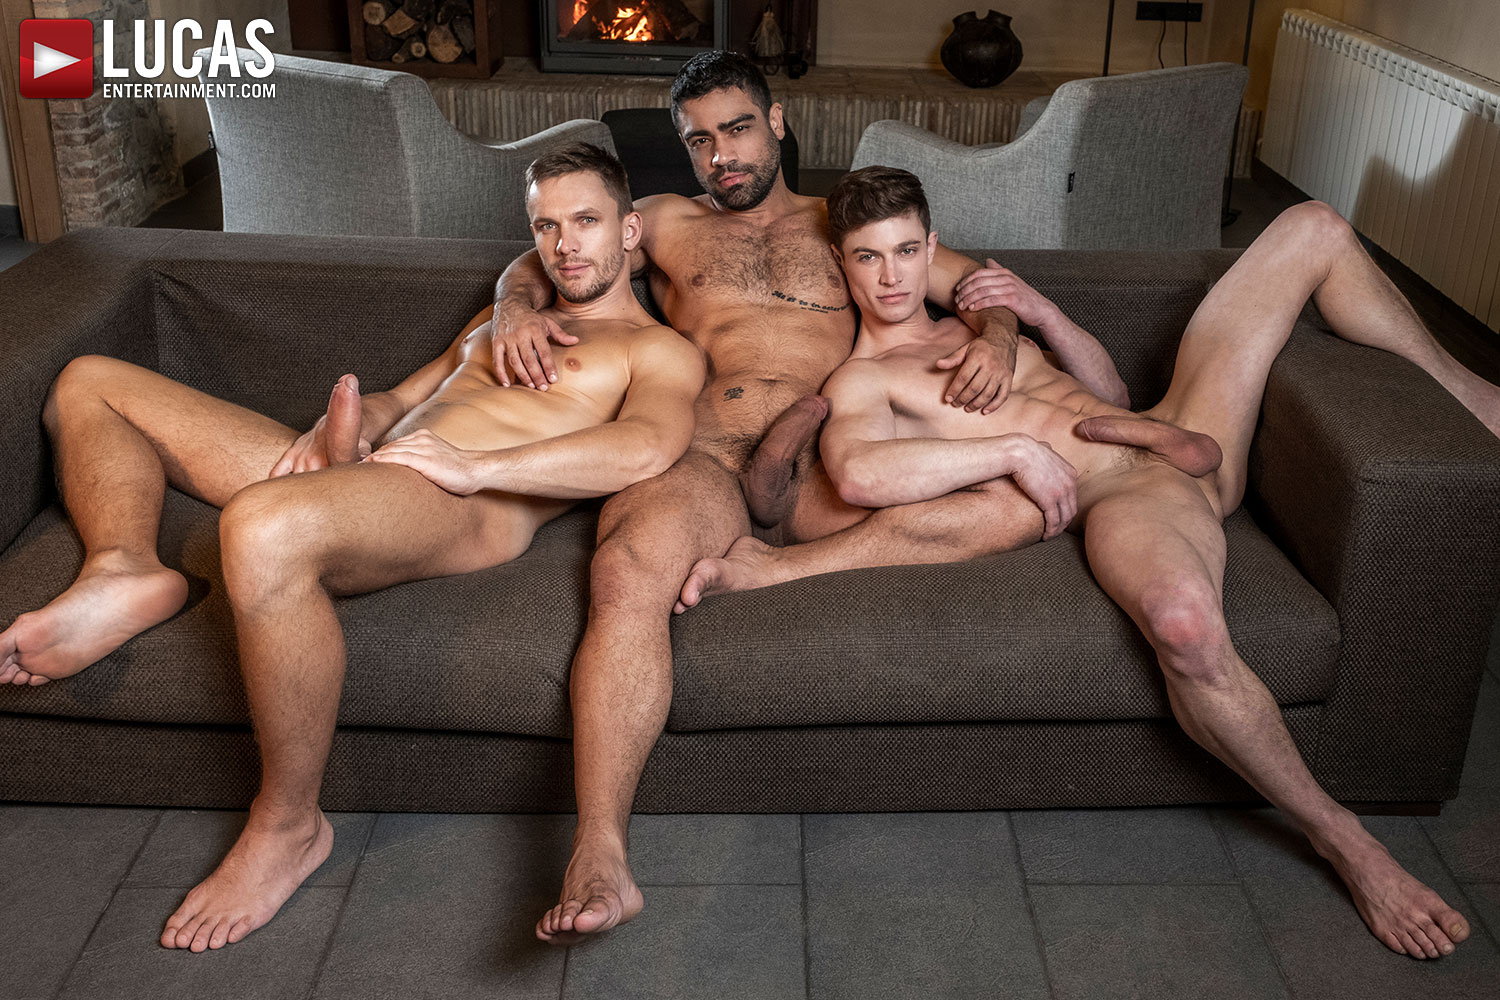 Andrey Vic And Wagner Vittoria Double-Team Ruslan Angelo - Gay Movies - Lucas Entertainment